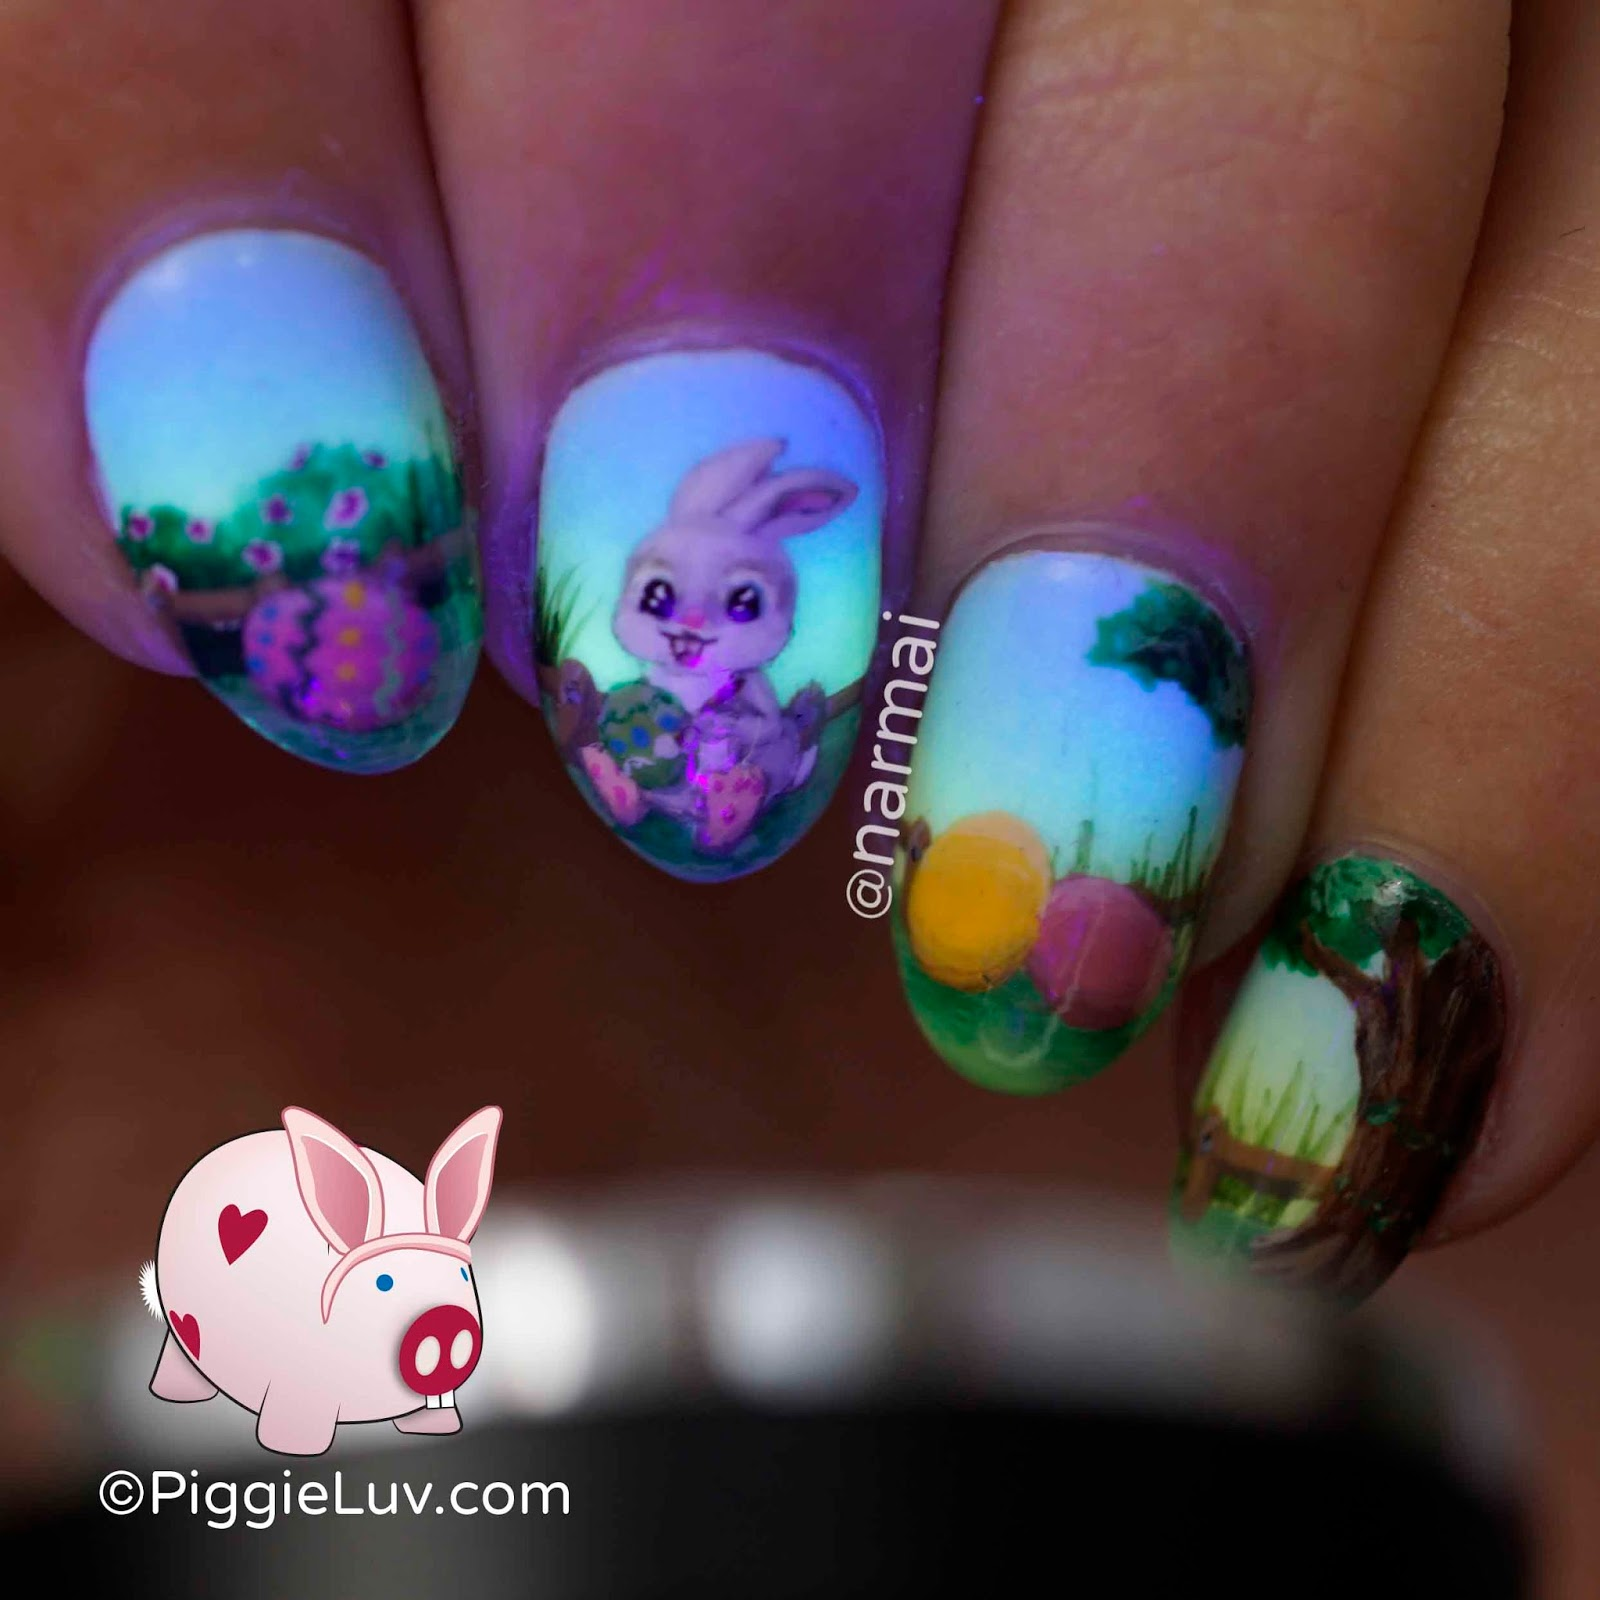 PiggieLuv: Painting Easter eggs nail art